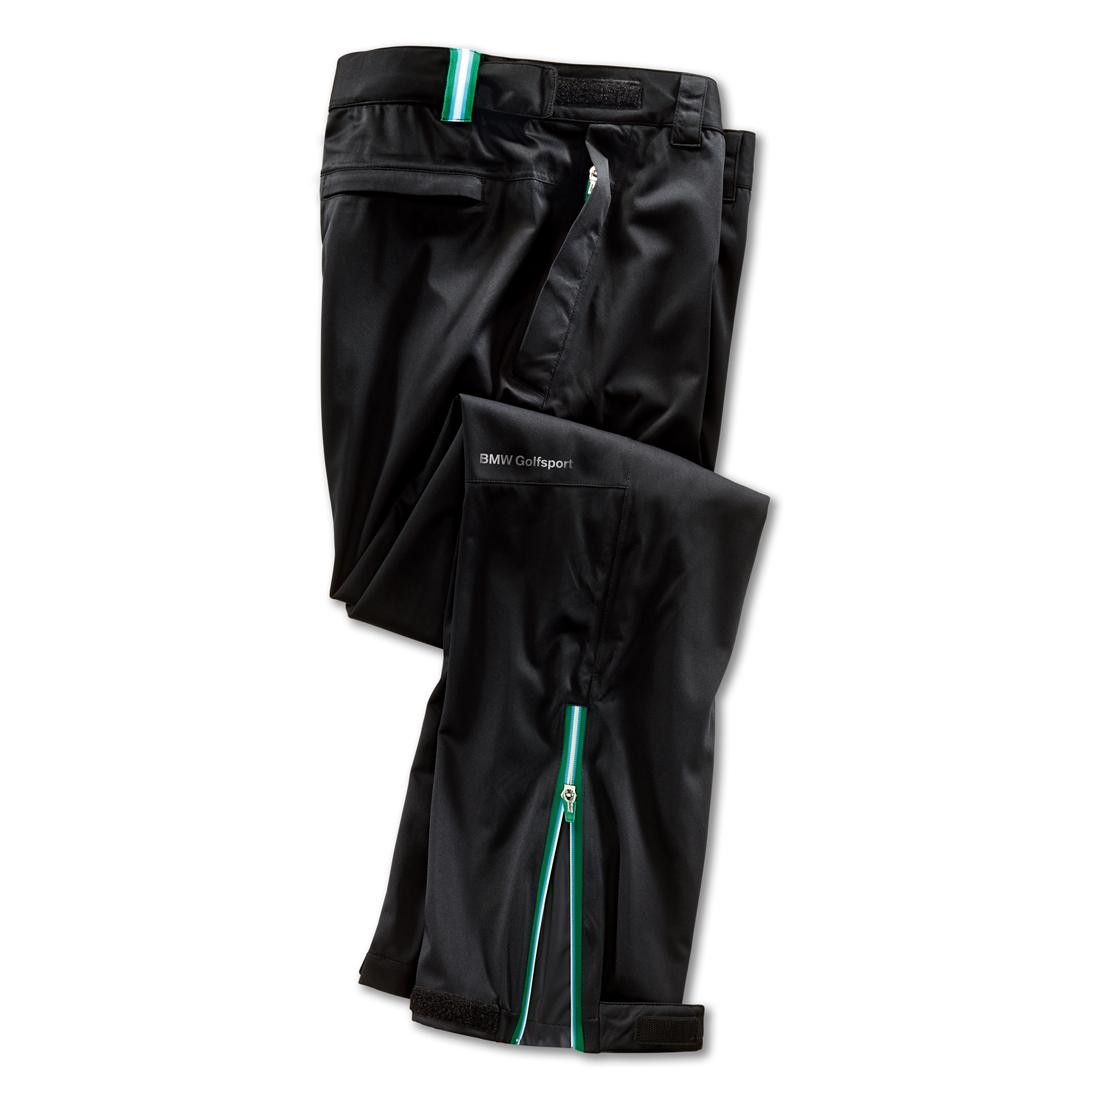 BMW Golfsport Men's Rain Pants